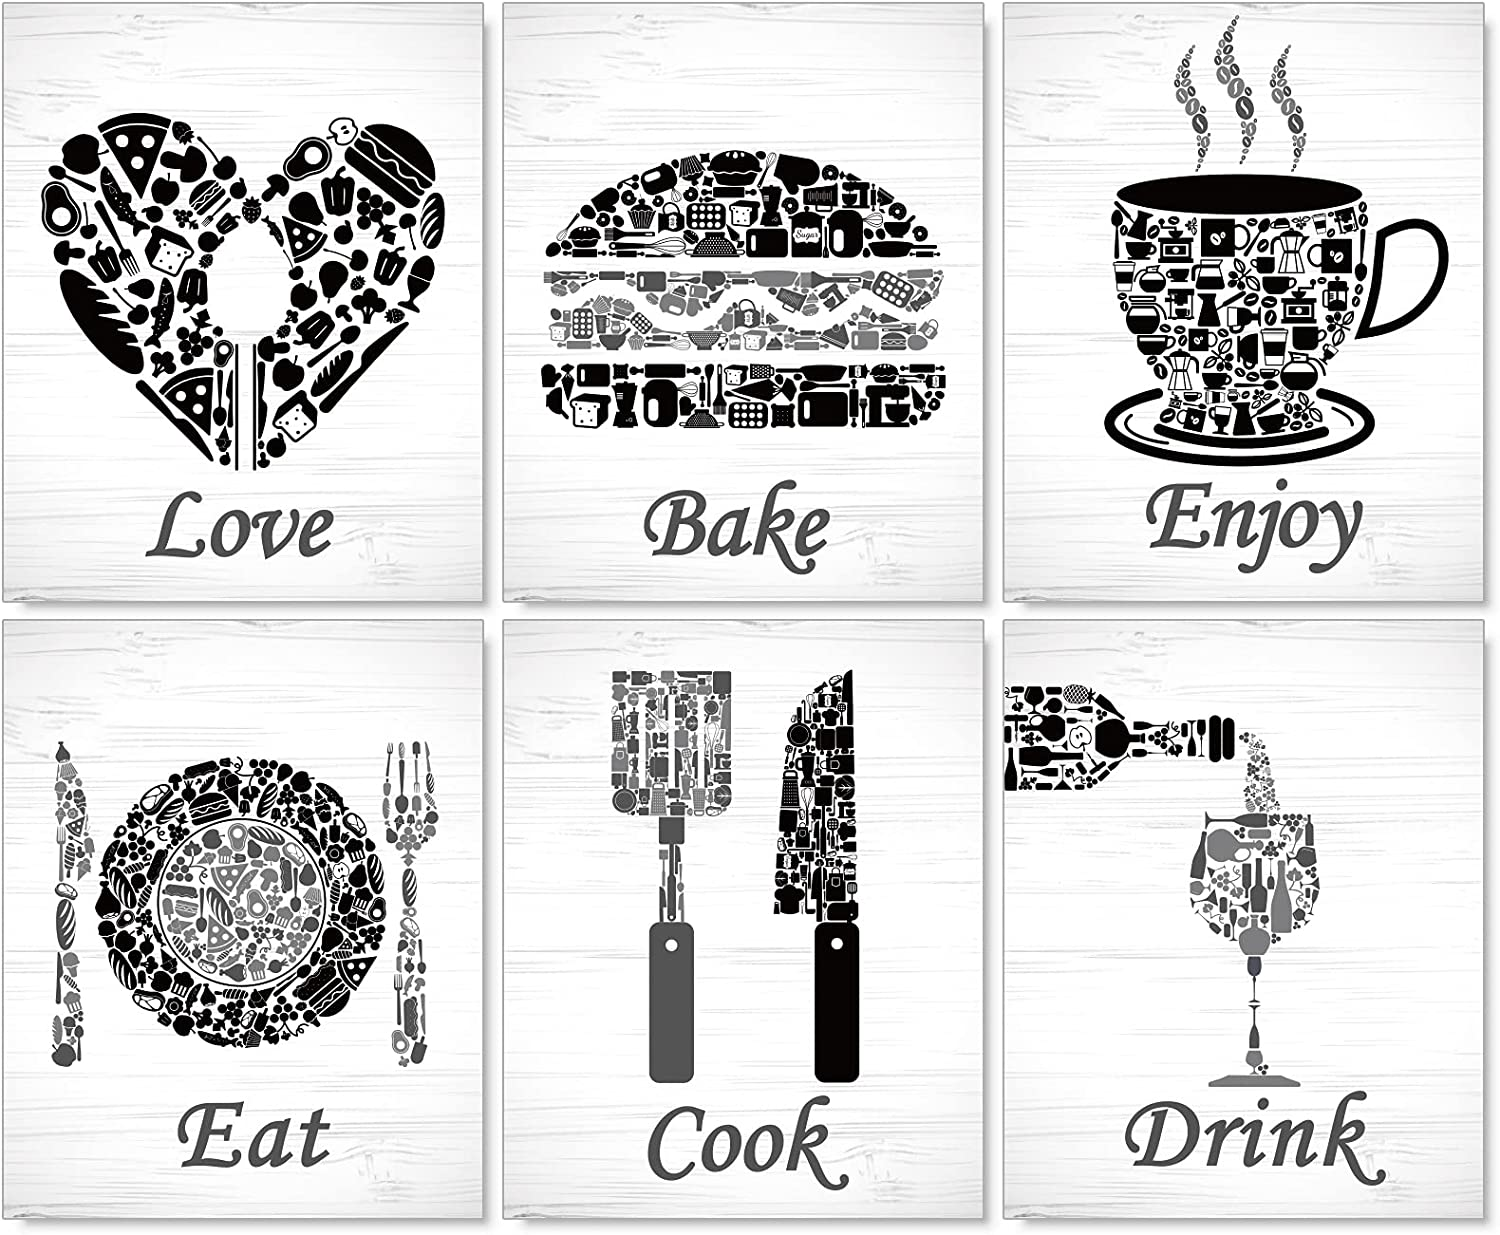 """Kitchen Wall Decorations Red Wall Art PaintingPoster Prints for Home,Vintage Kitchen Dining Room Wall Art Decor Eat Drink Coffee Prints Posters Signs Setsfor Home Country Farmhouse, 8"""" x 10"""",Unframed,Black"""